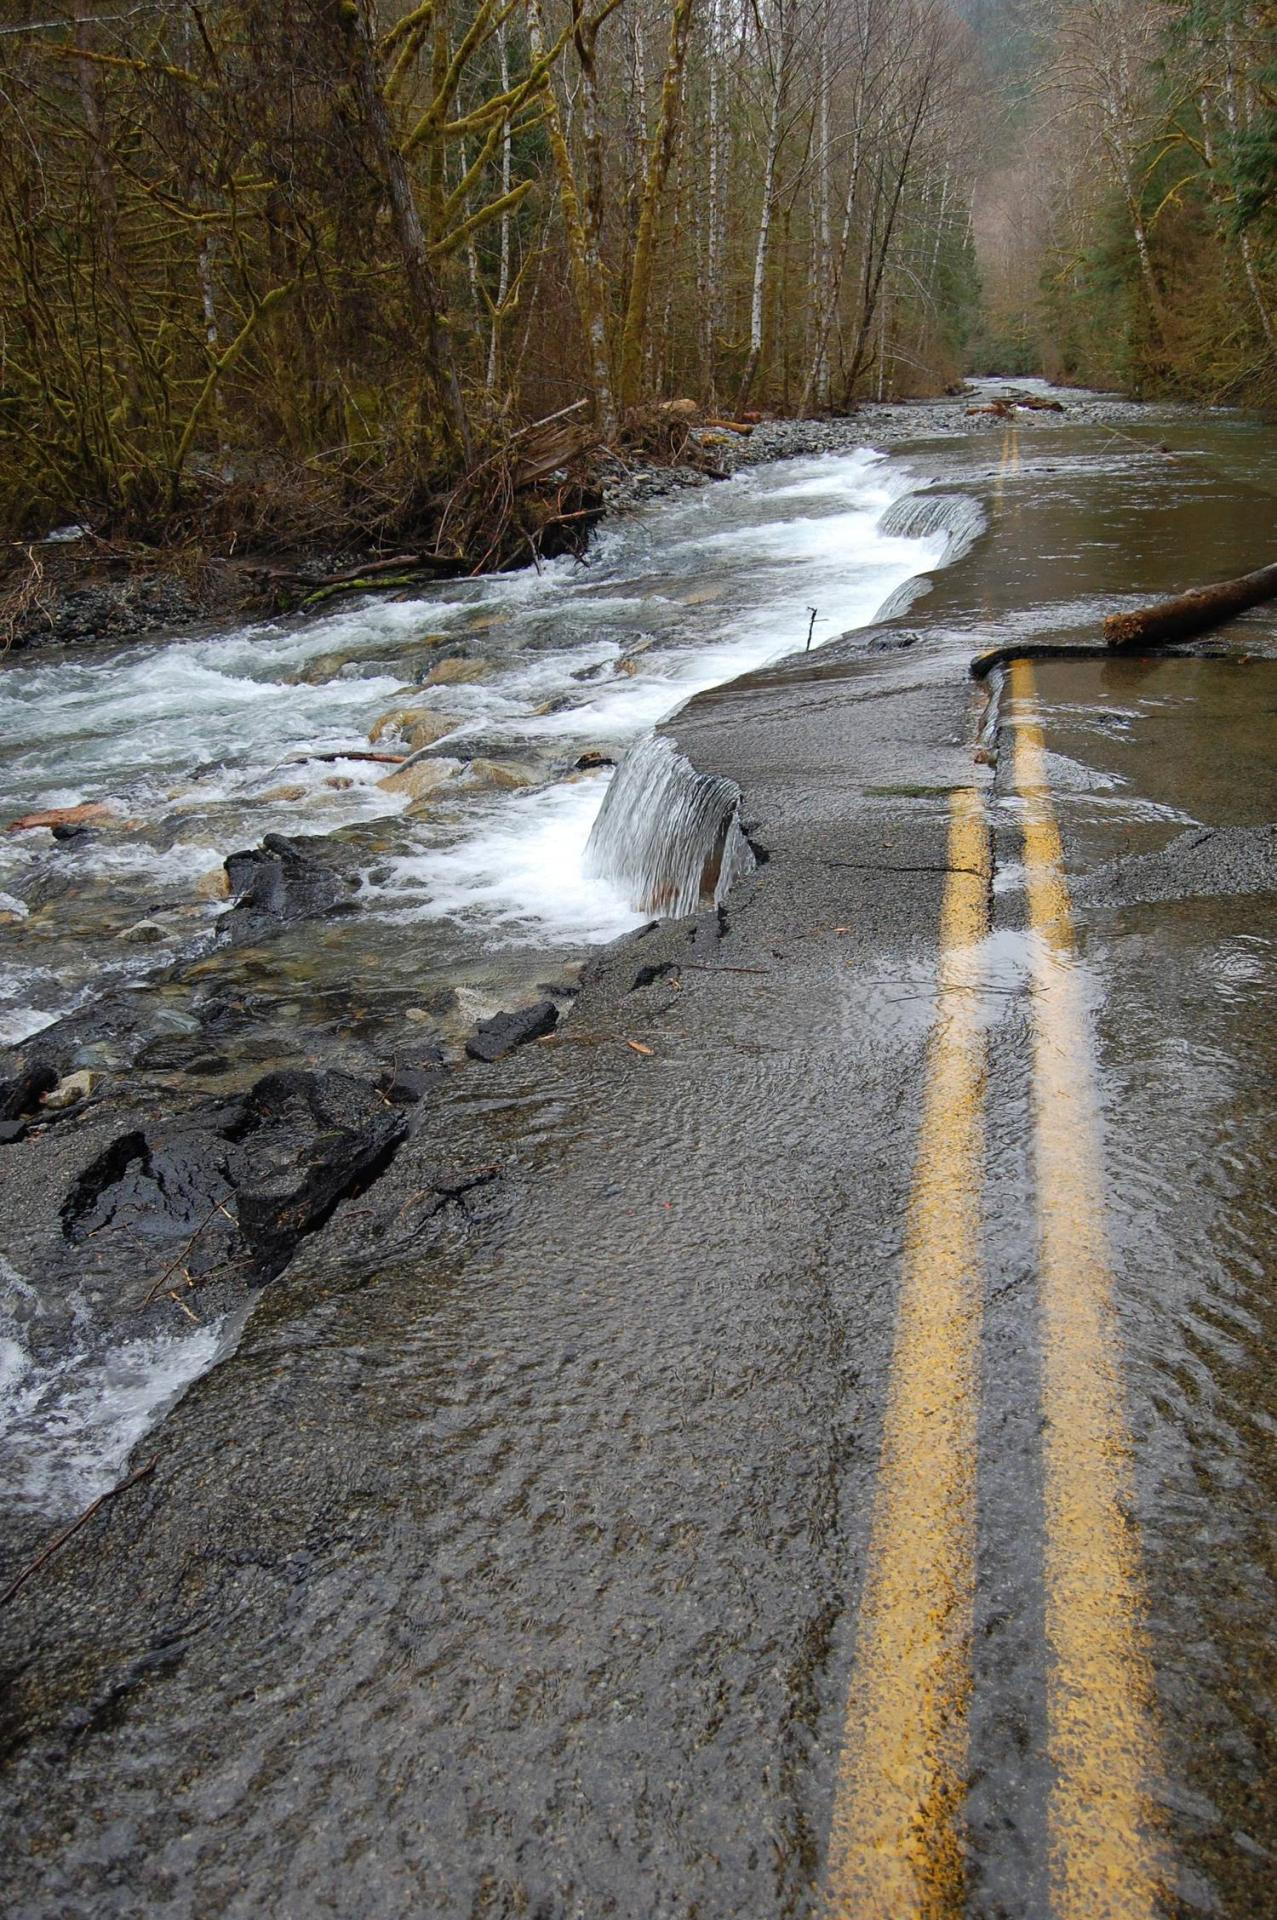 wethinkwedream:  gnostic-forest:  architectureofdoom:  Road washed out by flood, WA state.  This is so beautiful  fuck yeah nature